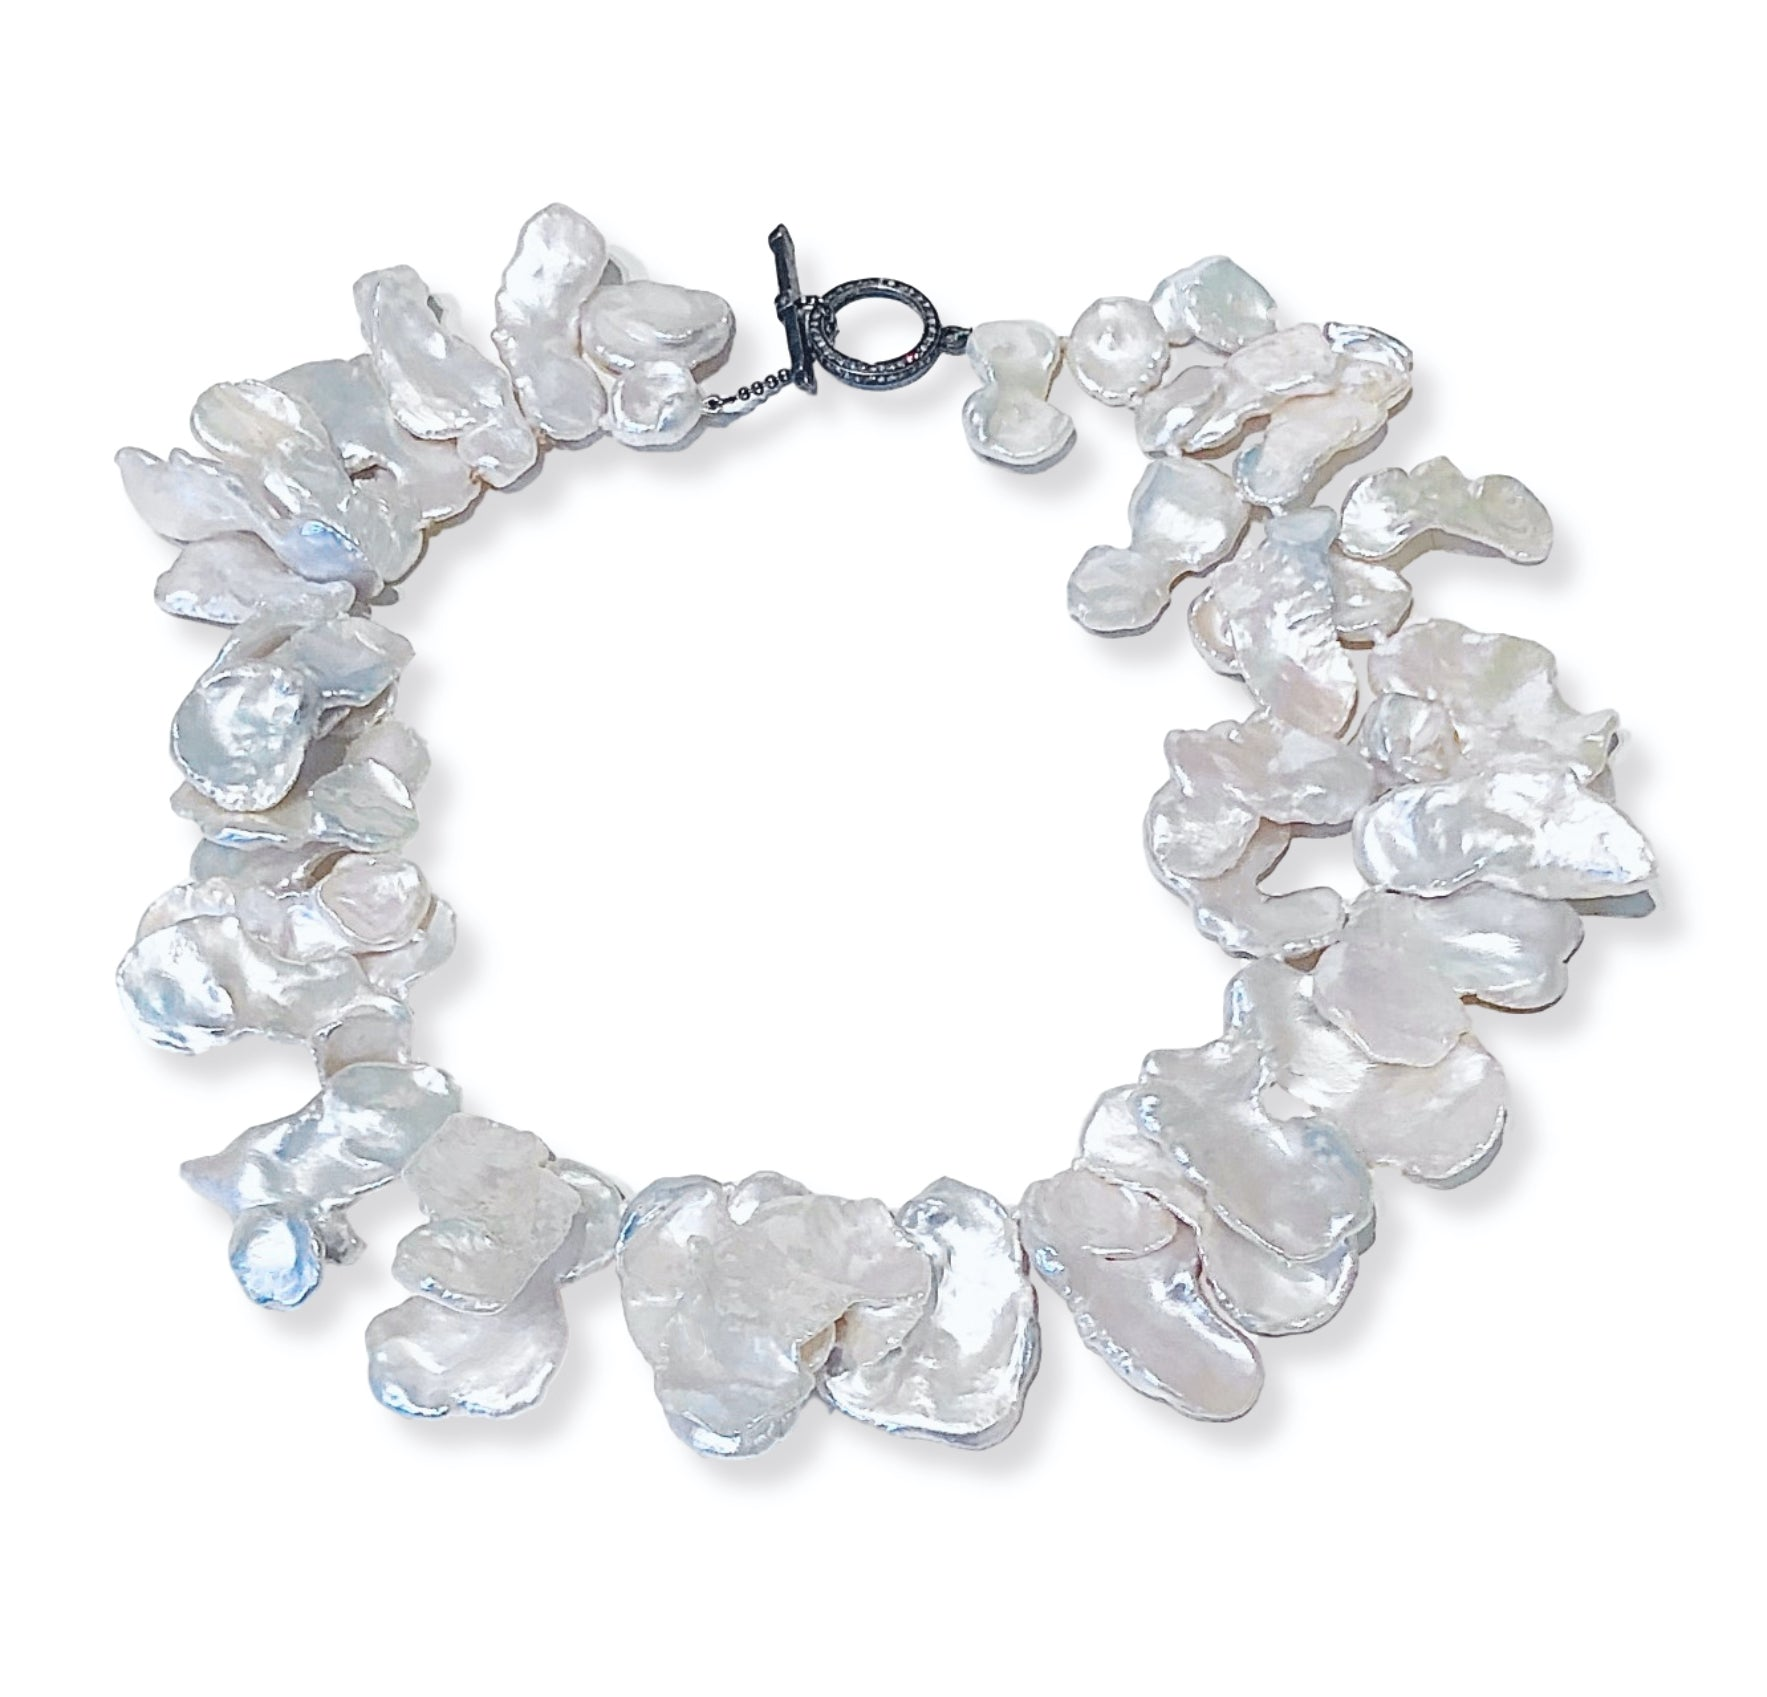 Keshi Pearl Necklace with Diamond Clasp